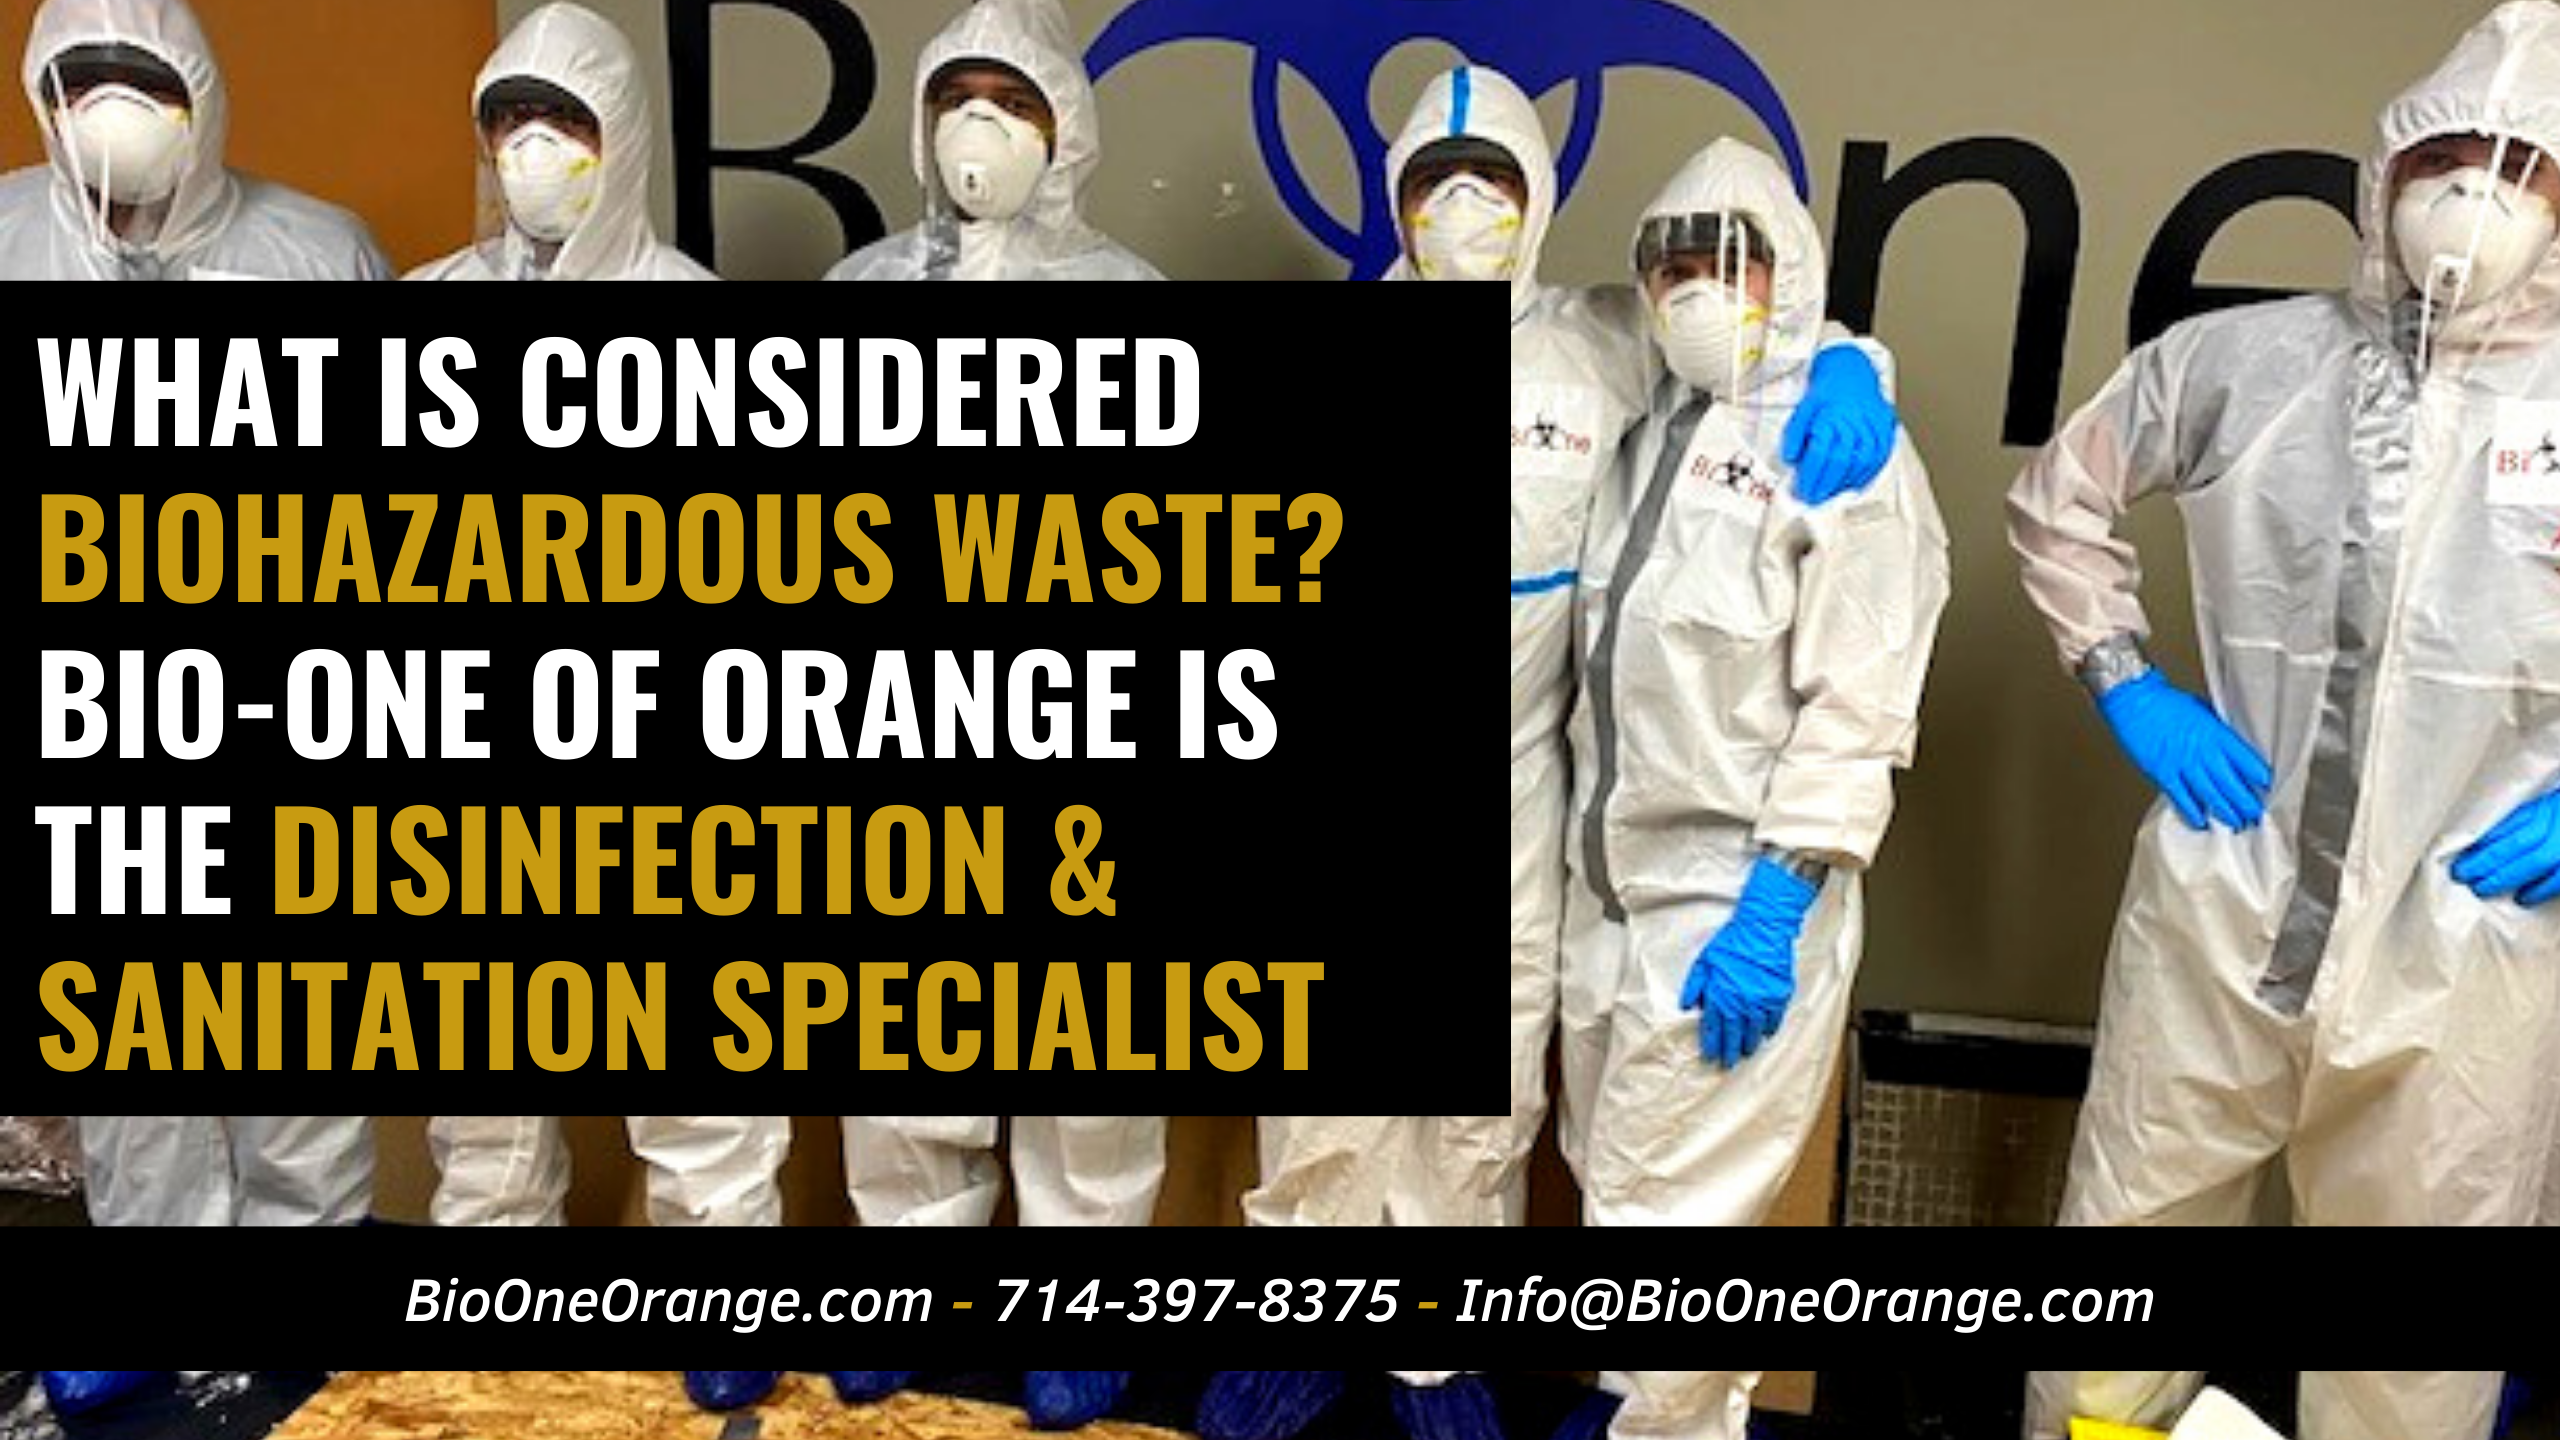 What is considered Biohazardous waste? Bio-One of Orange is the sanitation and disinfection specialist!